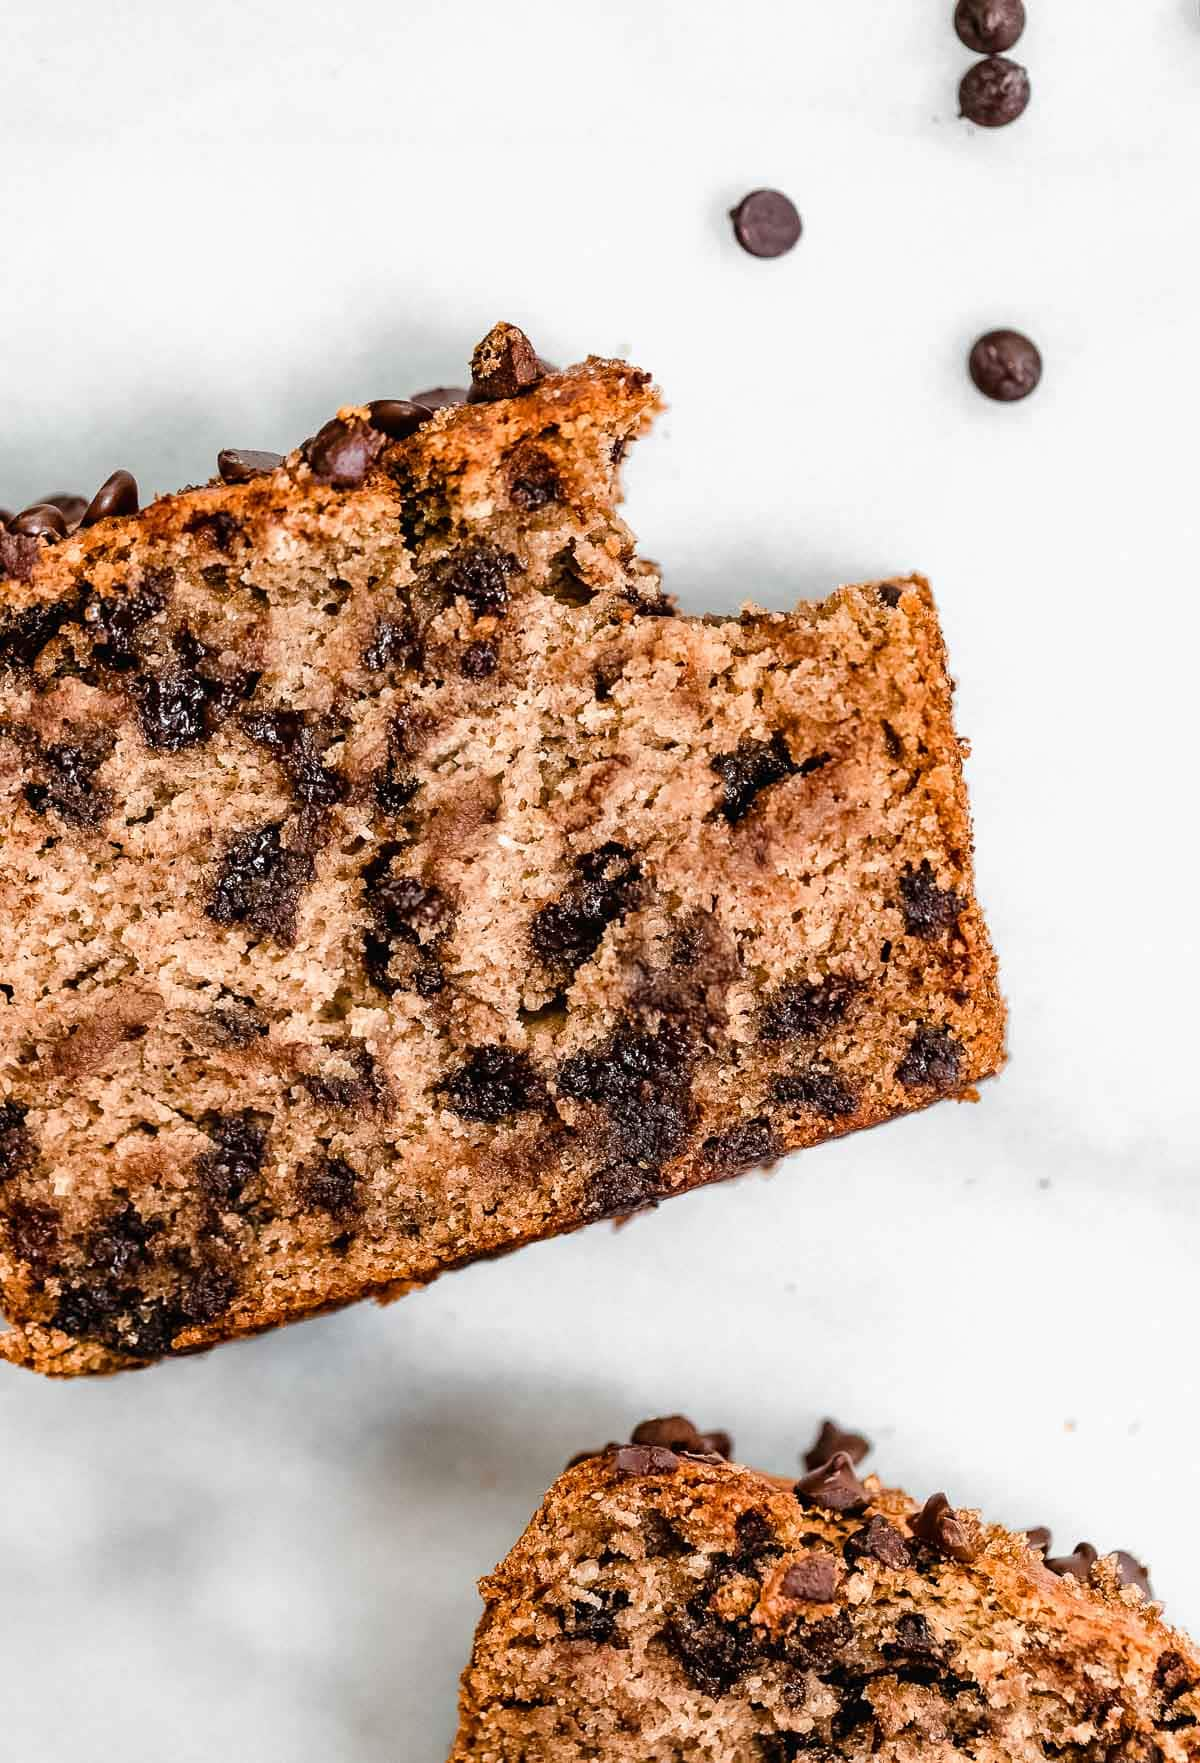 Chocolate chip banana bread with one bite taken out.